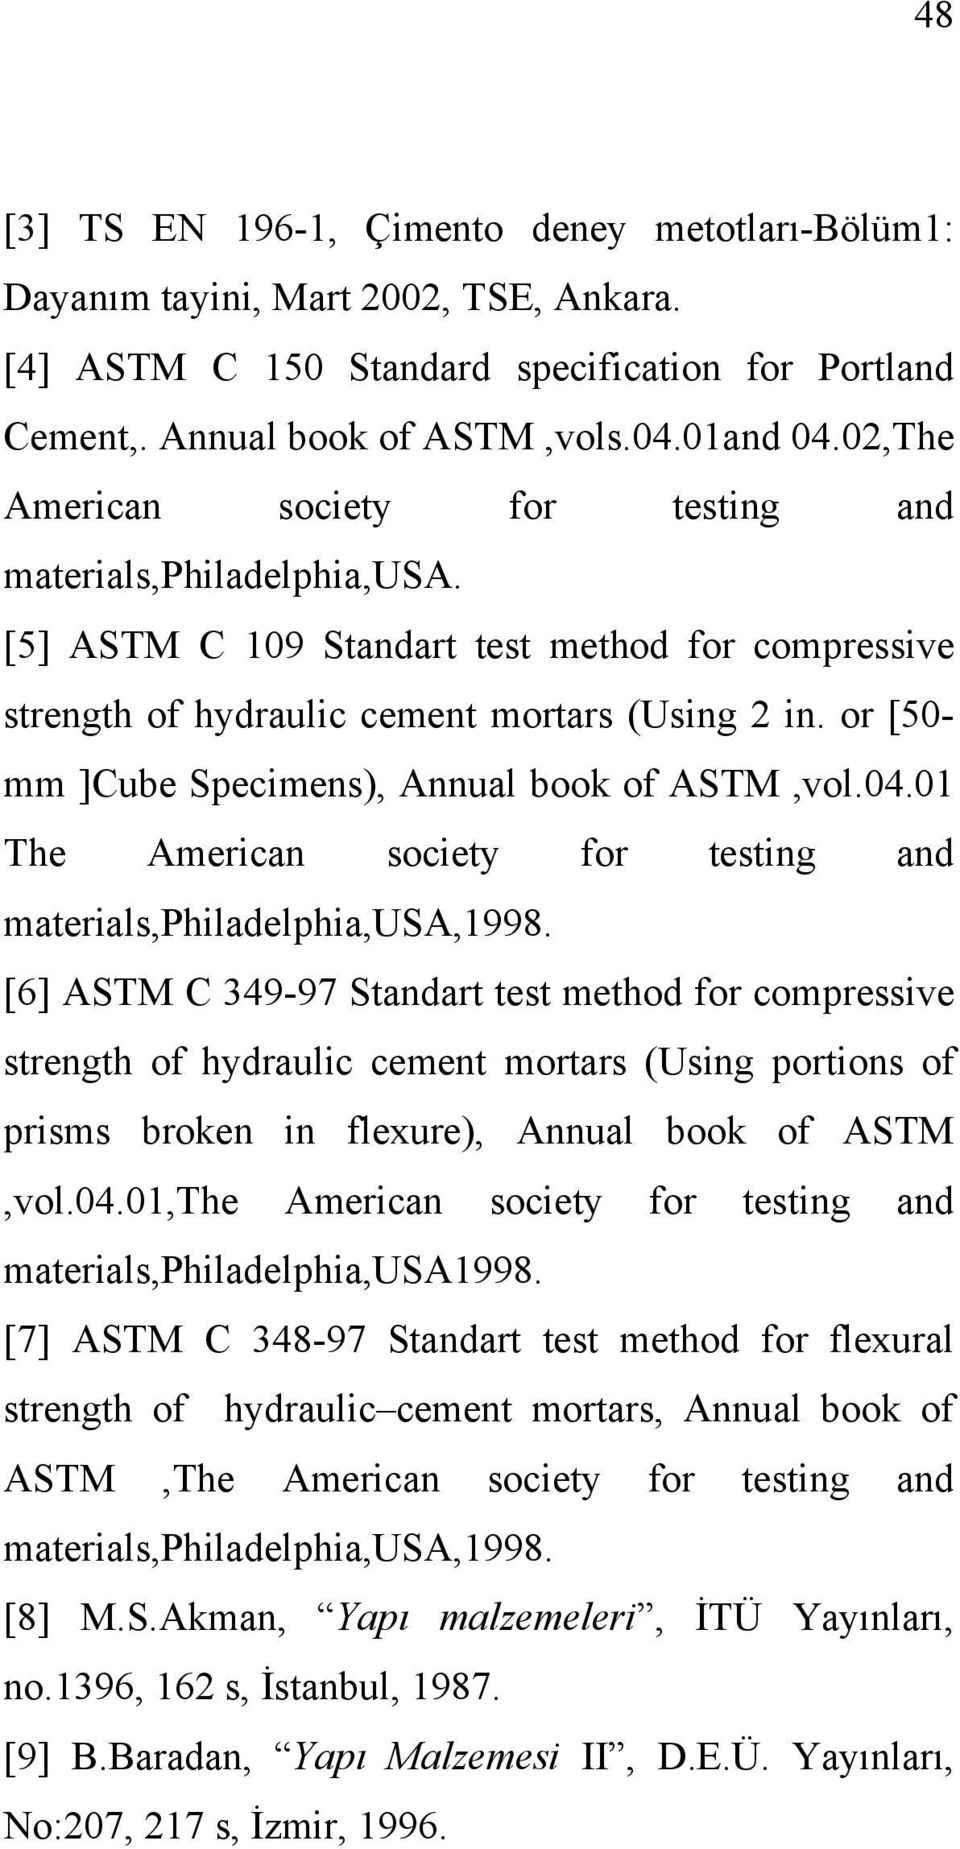 or [50- mm ]Cube Specimens), Annual book of ASTM,vol.04.01 The American society for testing and materials,philadelphia,usa,1998.